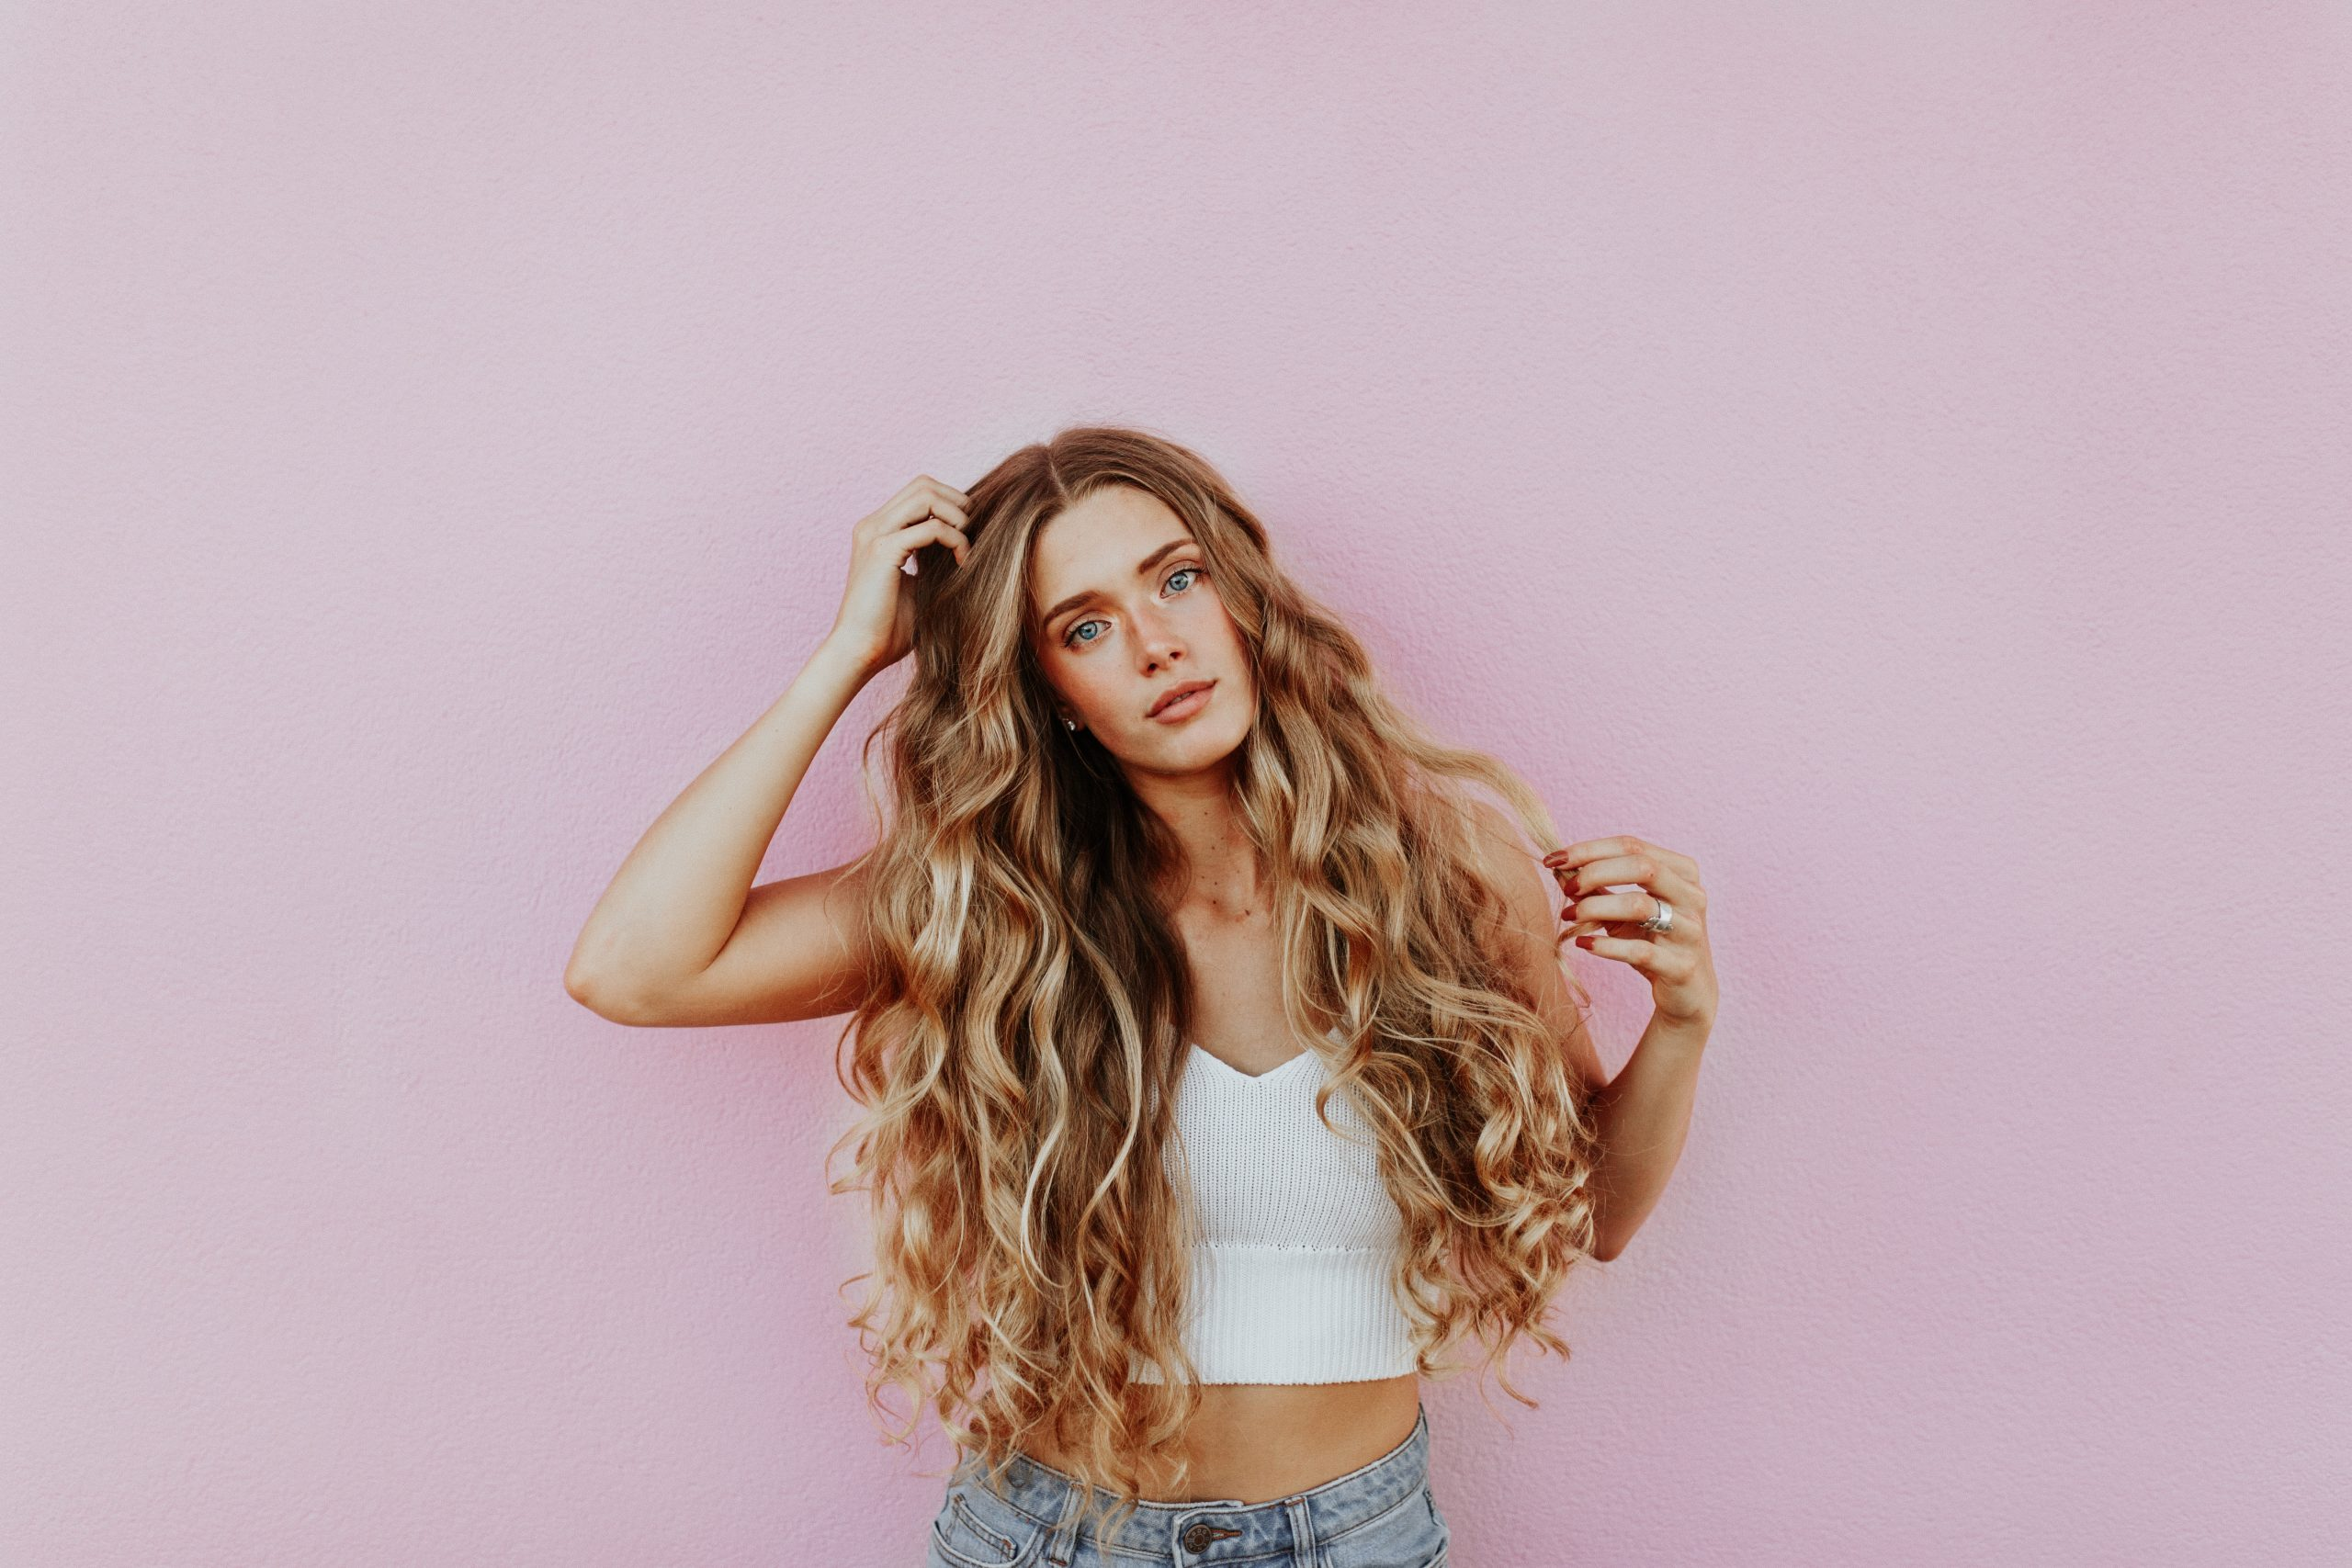 A blonde model posing for a shot against a pink background